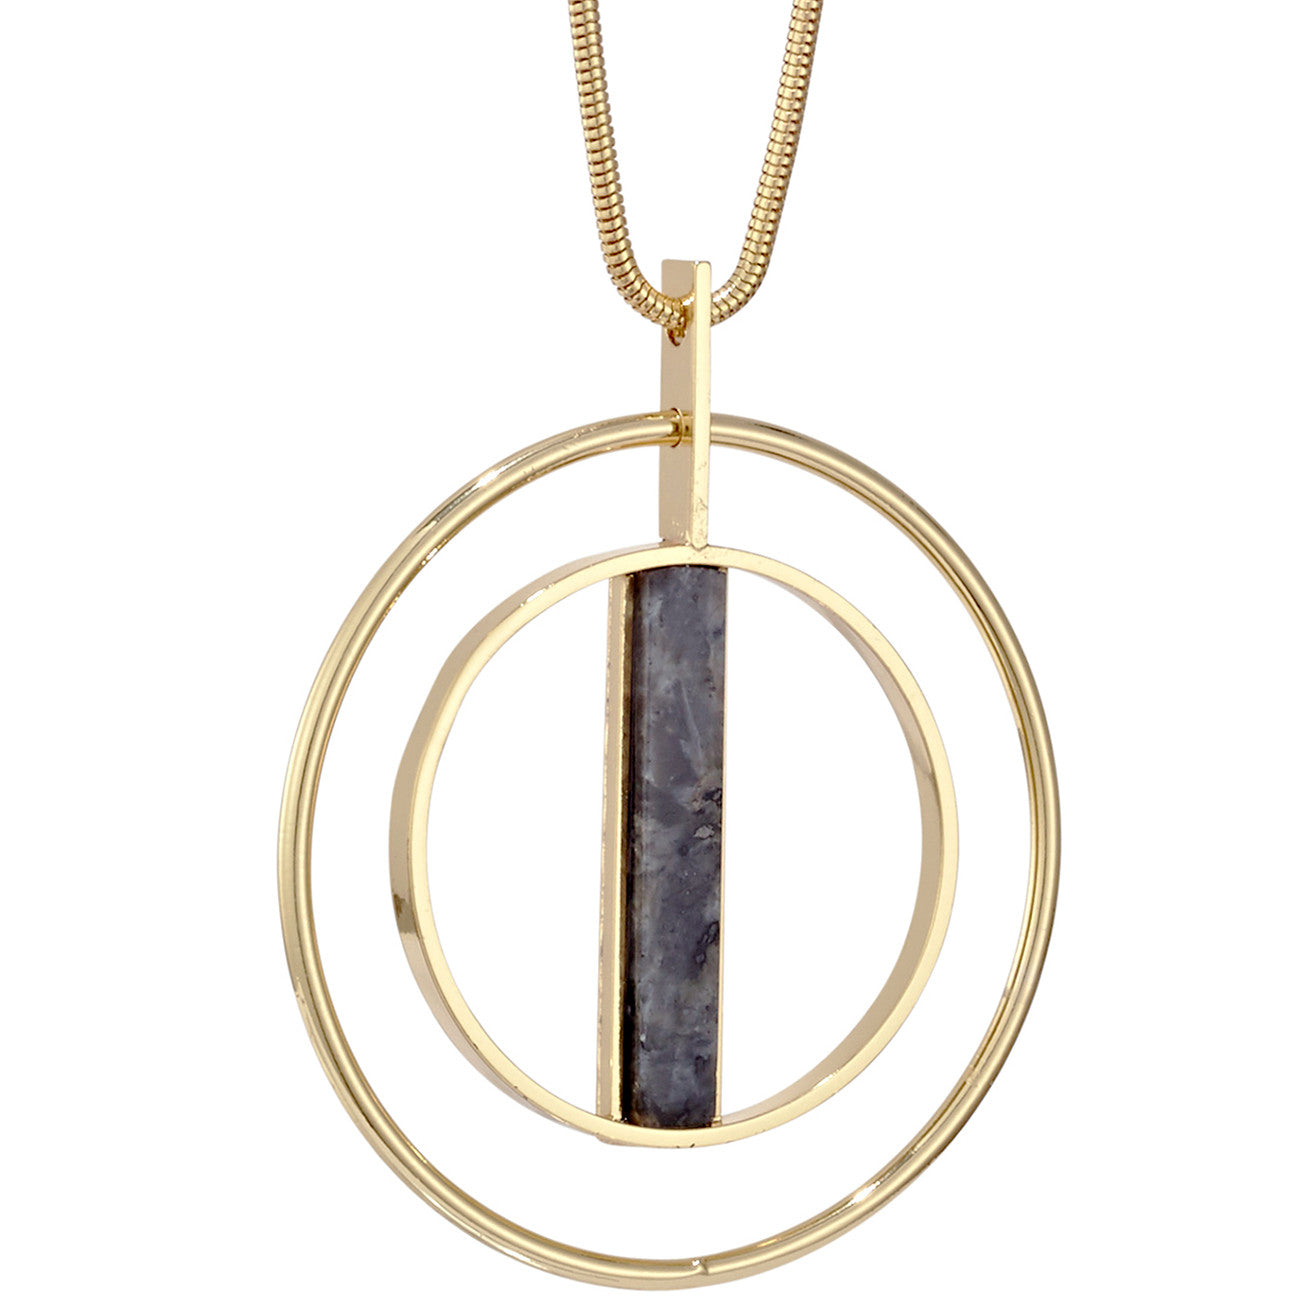 Lennox Pendant by Jenny Bird in Gold with Labradorite Stone